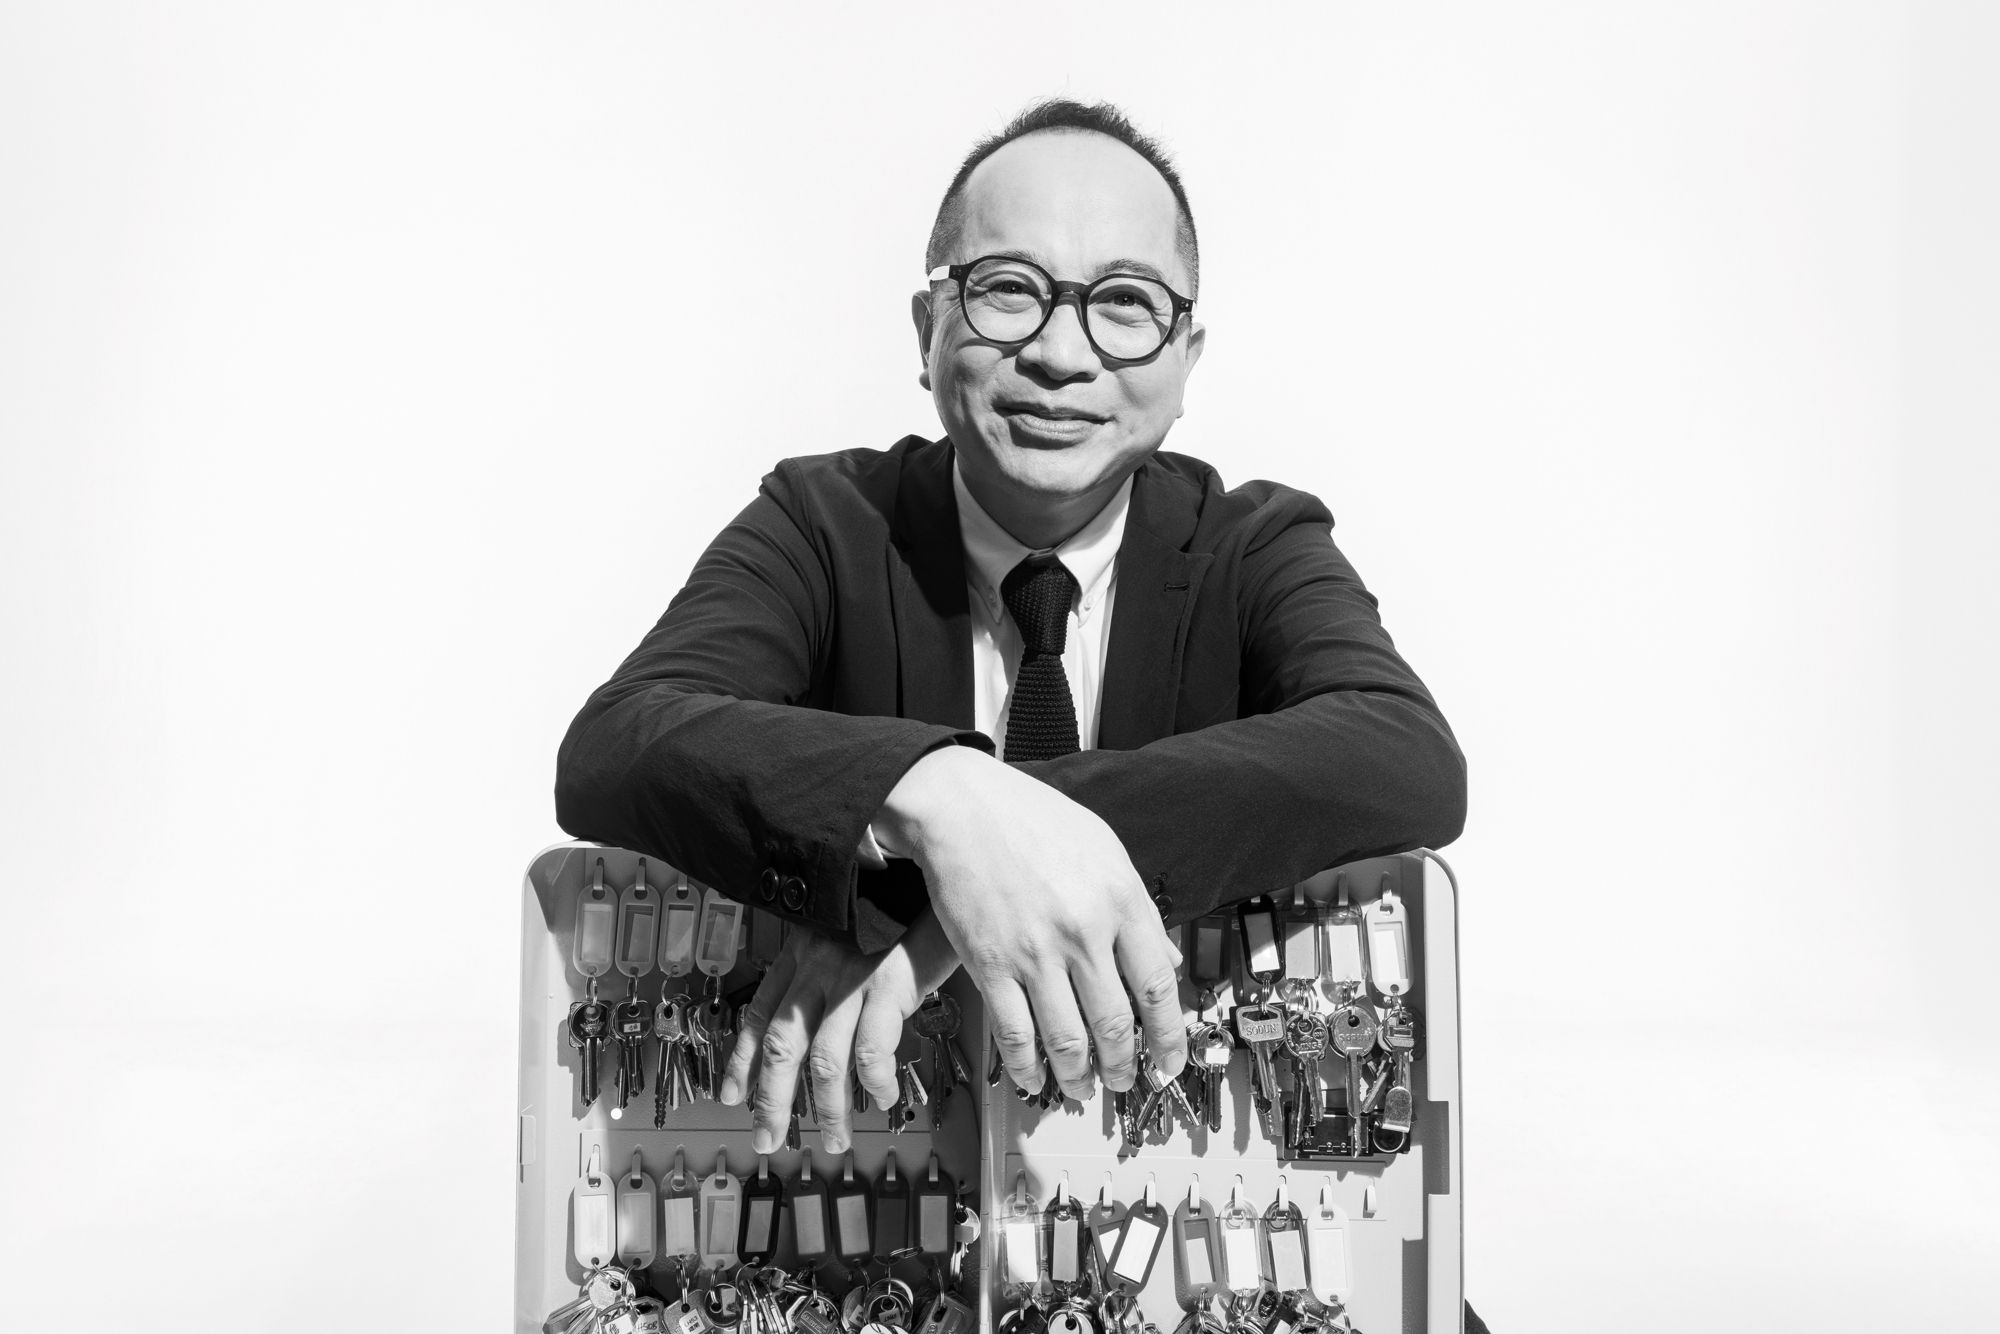 Asia's Most Influential: Ricky Yu, Founder Of Light Be